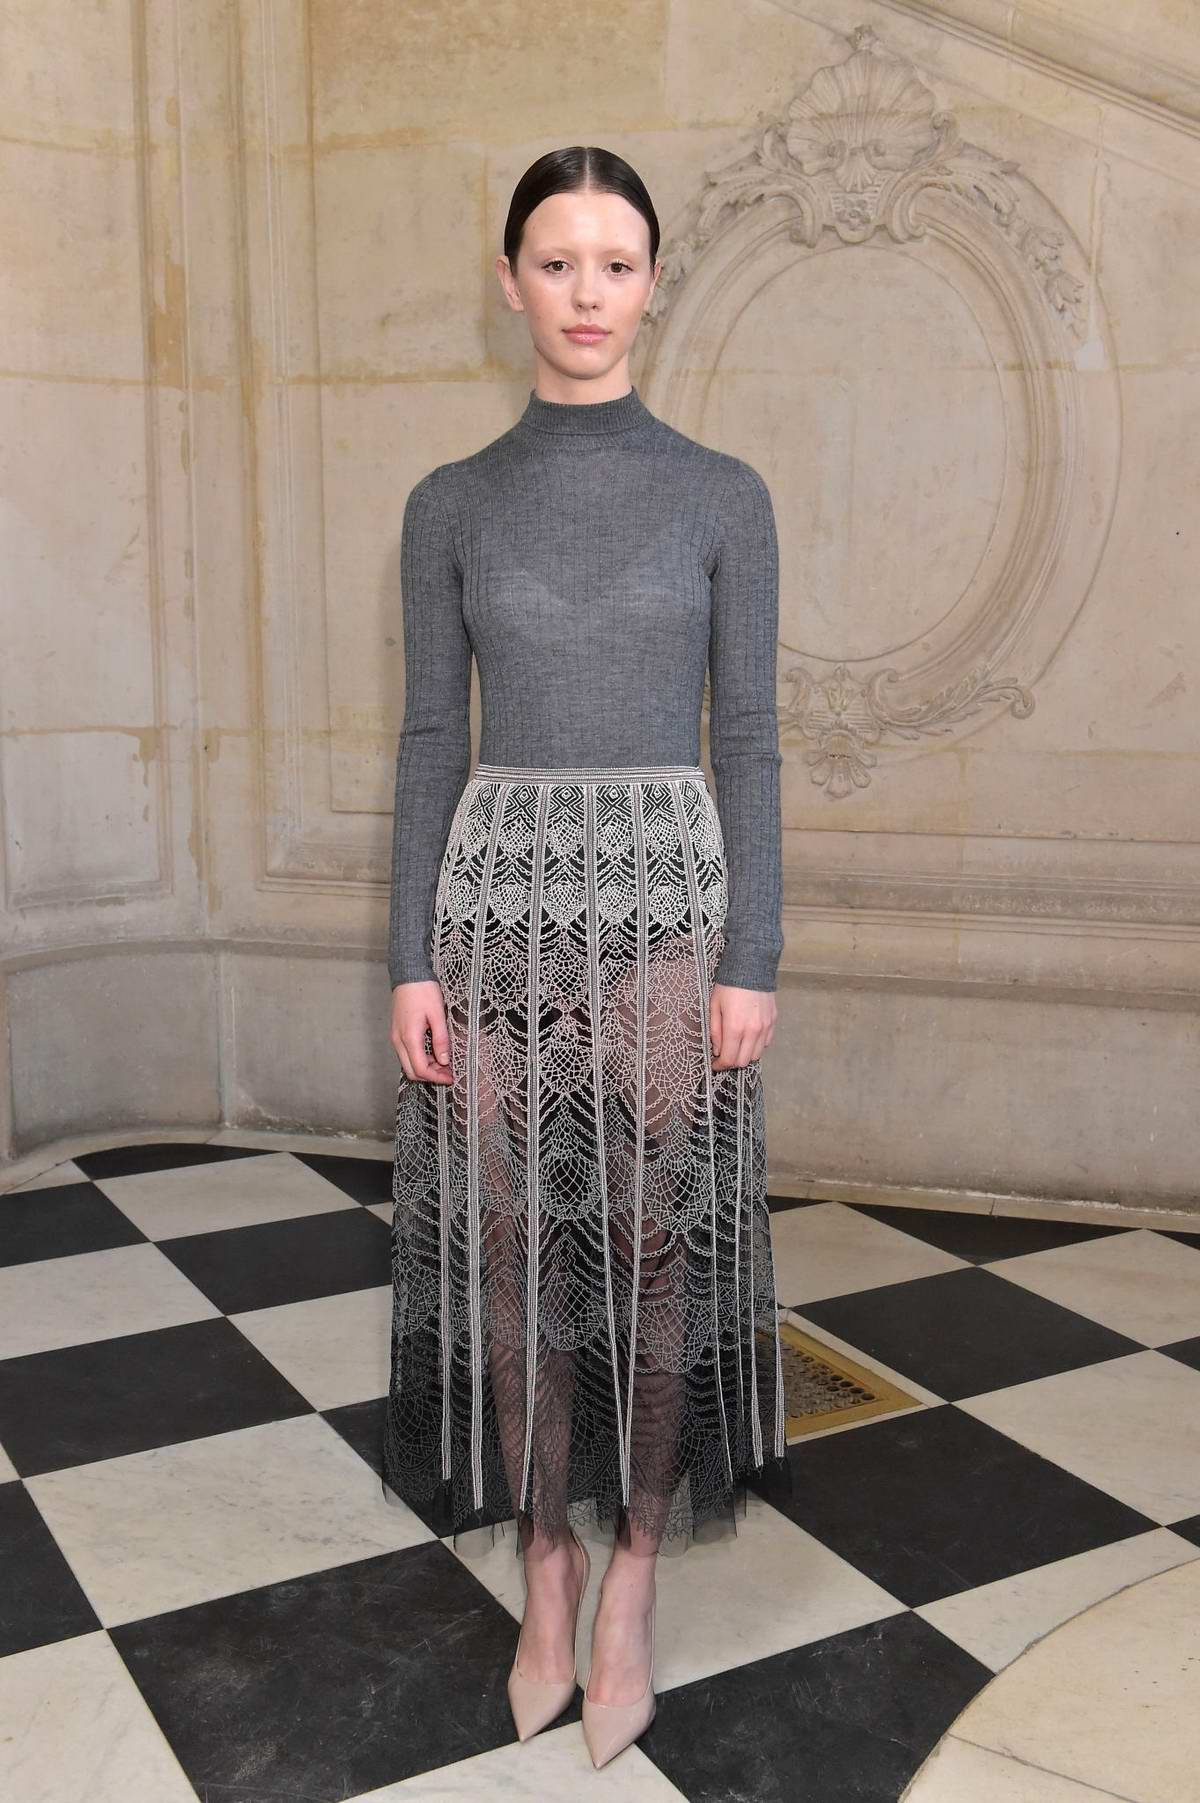 Mia Goth attends the Christian Dior Haute Couture Spring/Summer 2019 Show during Paris Fashion Week in Paris, France